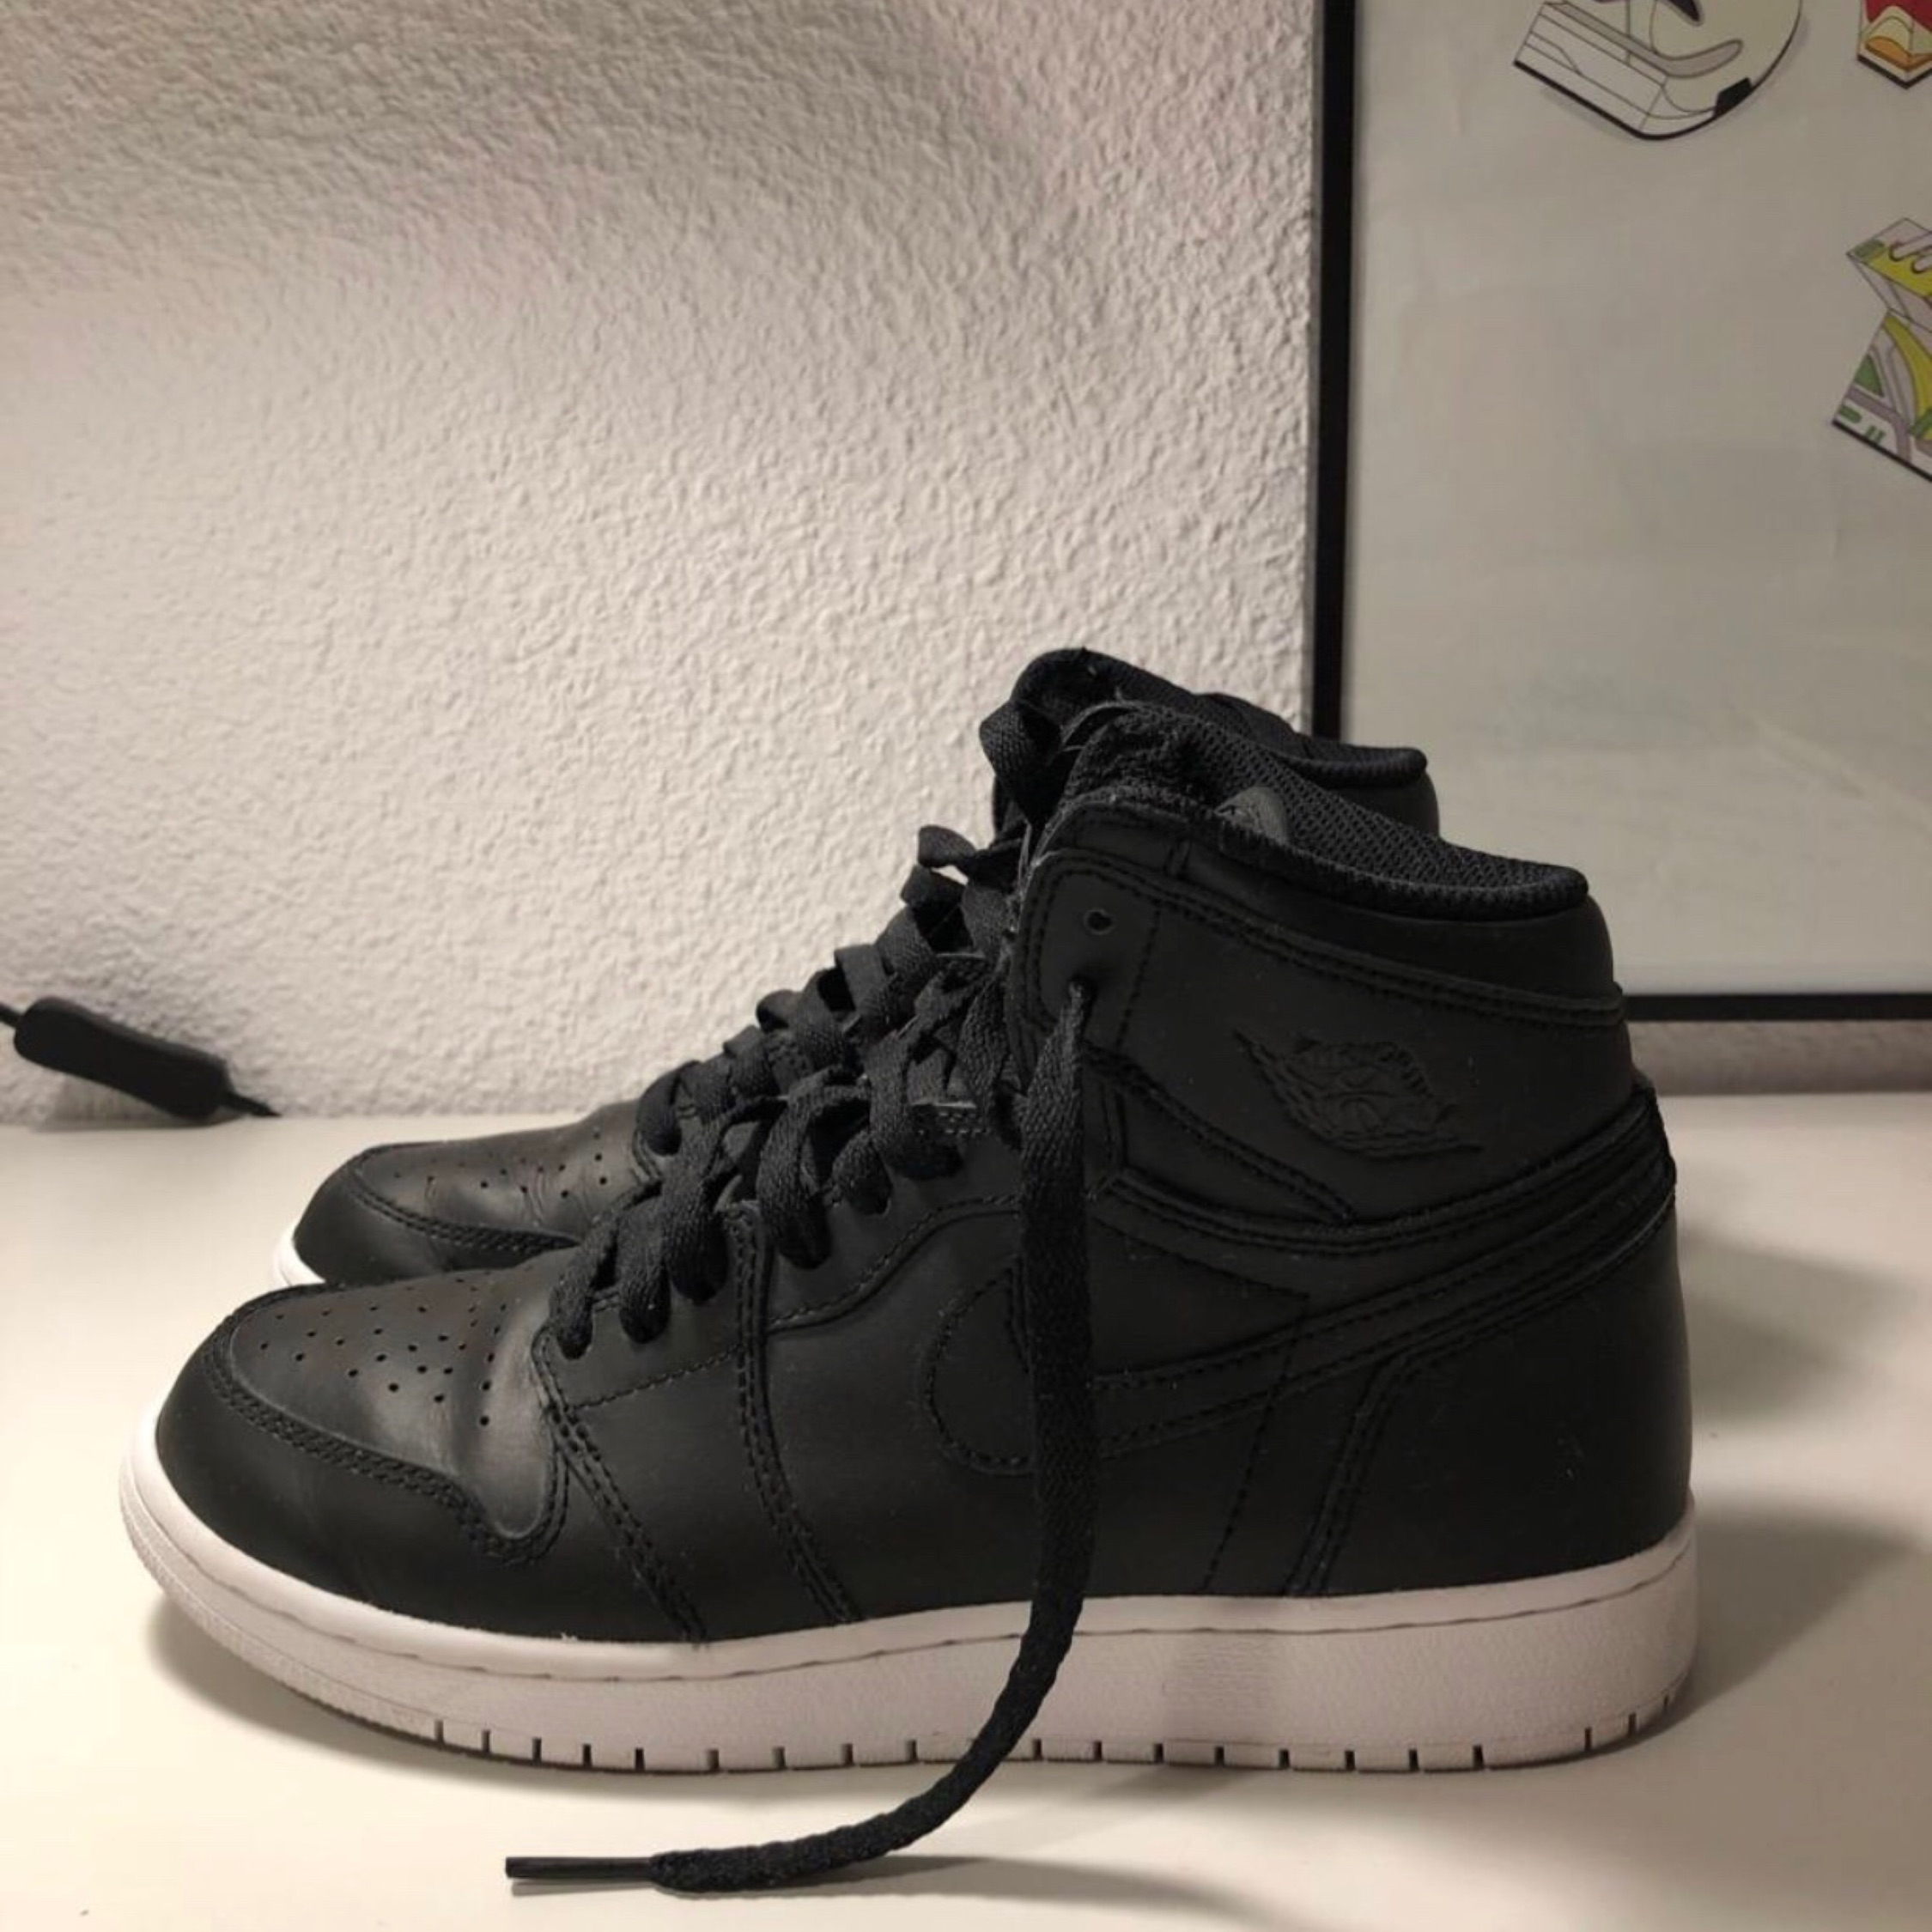 uk availability 7b55c 5813e Air Jordan Retro 1 Cyber Monday